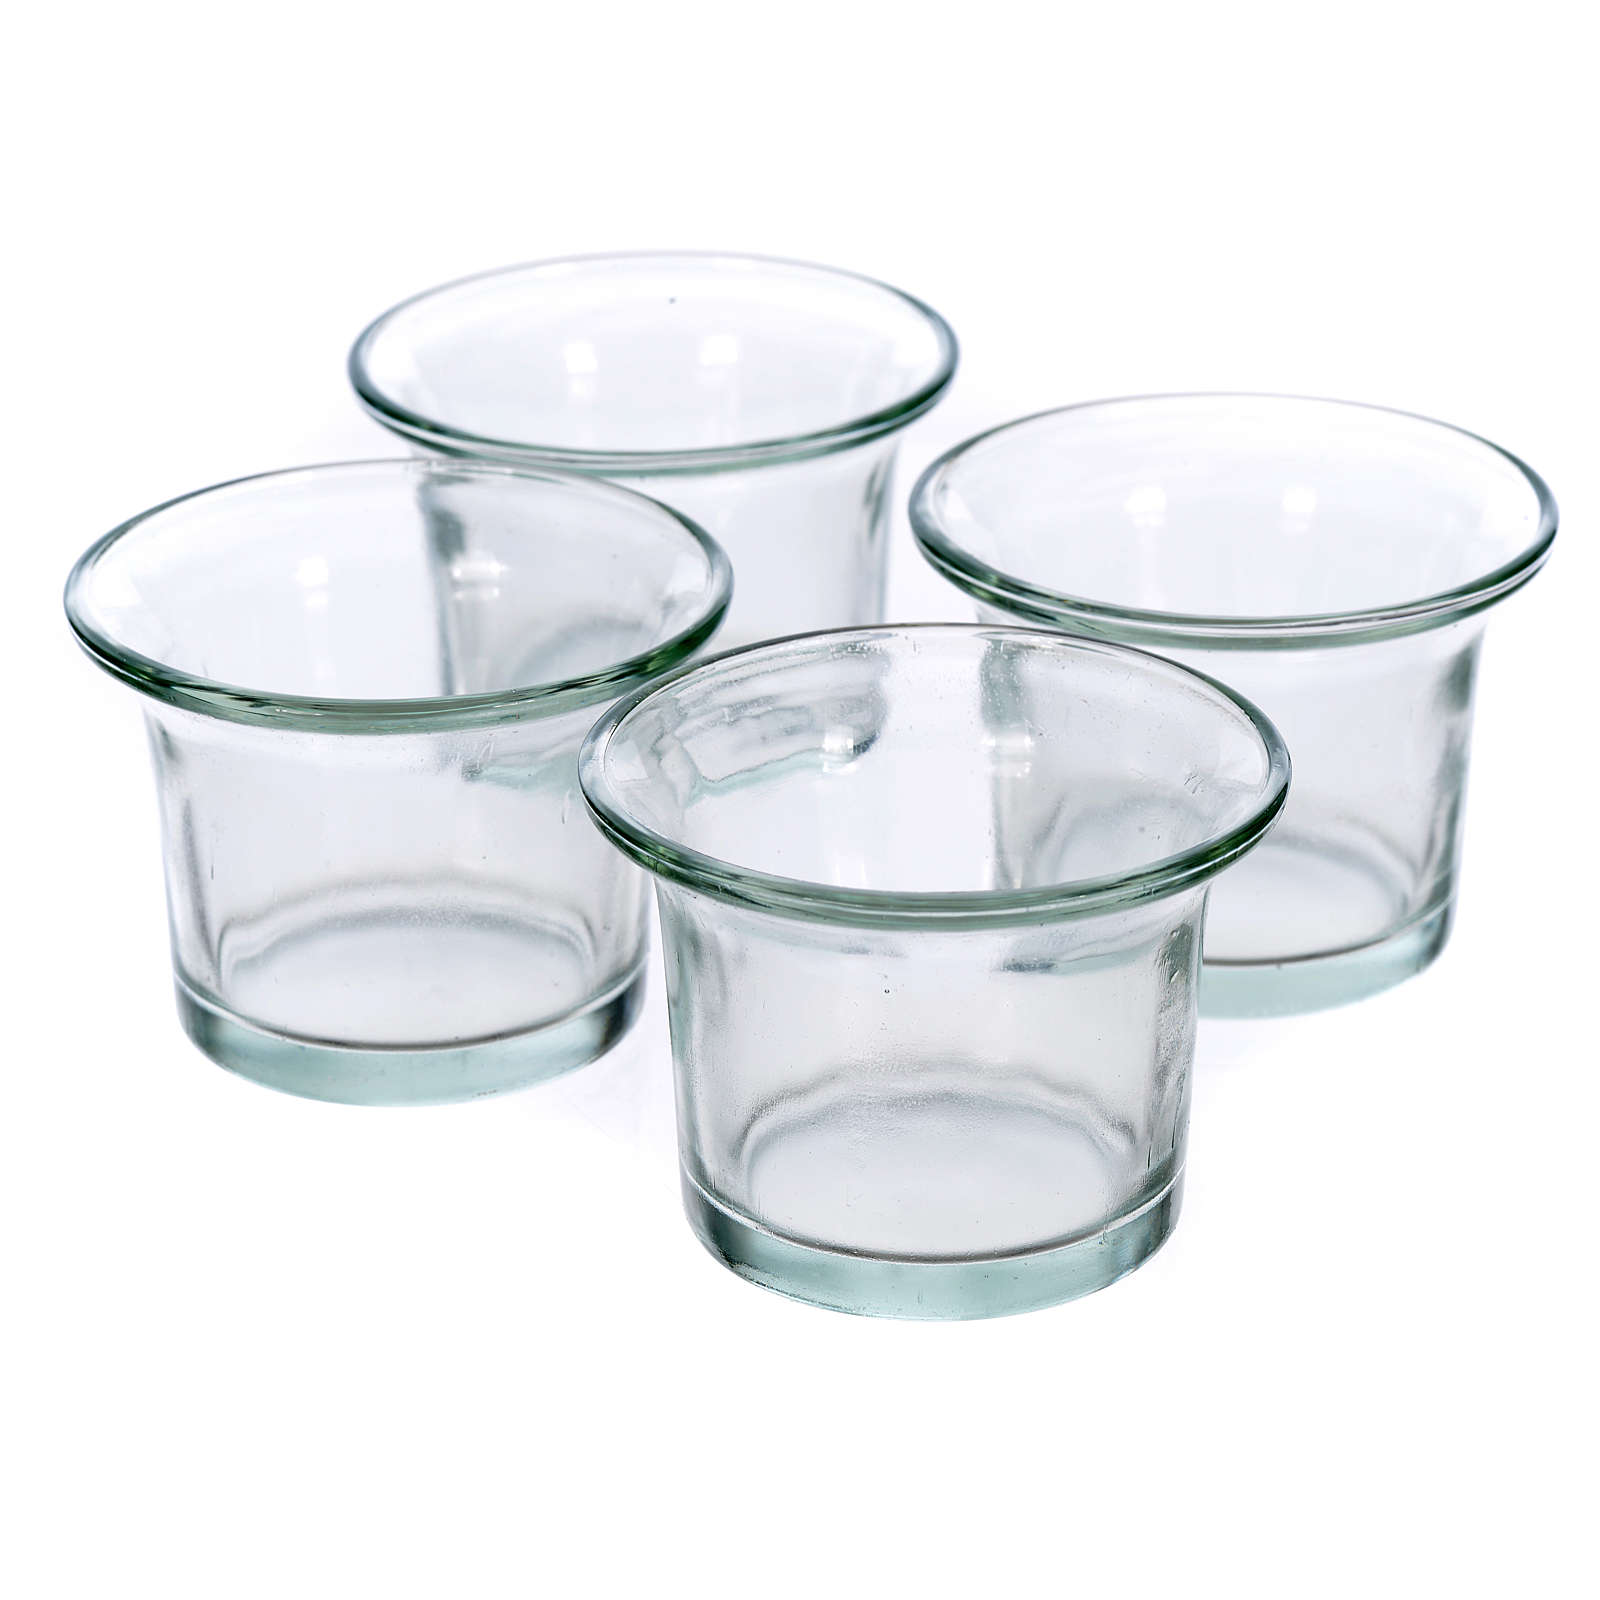 Replacement for tree candle holder, transparent glasses 4